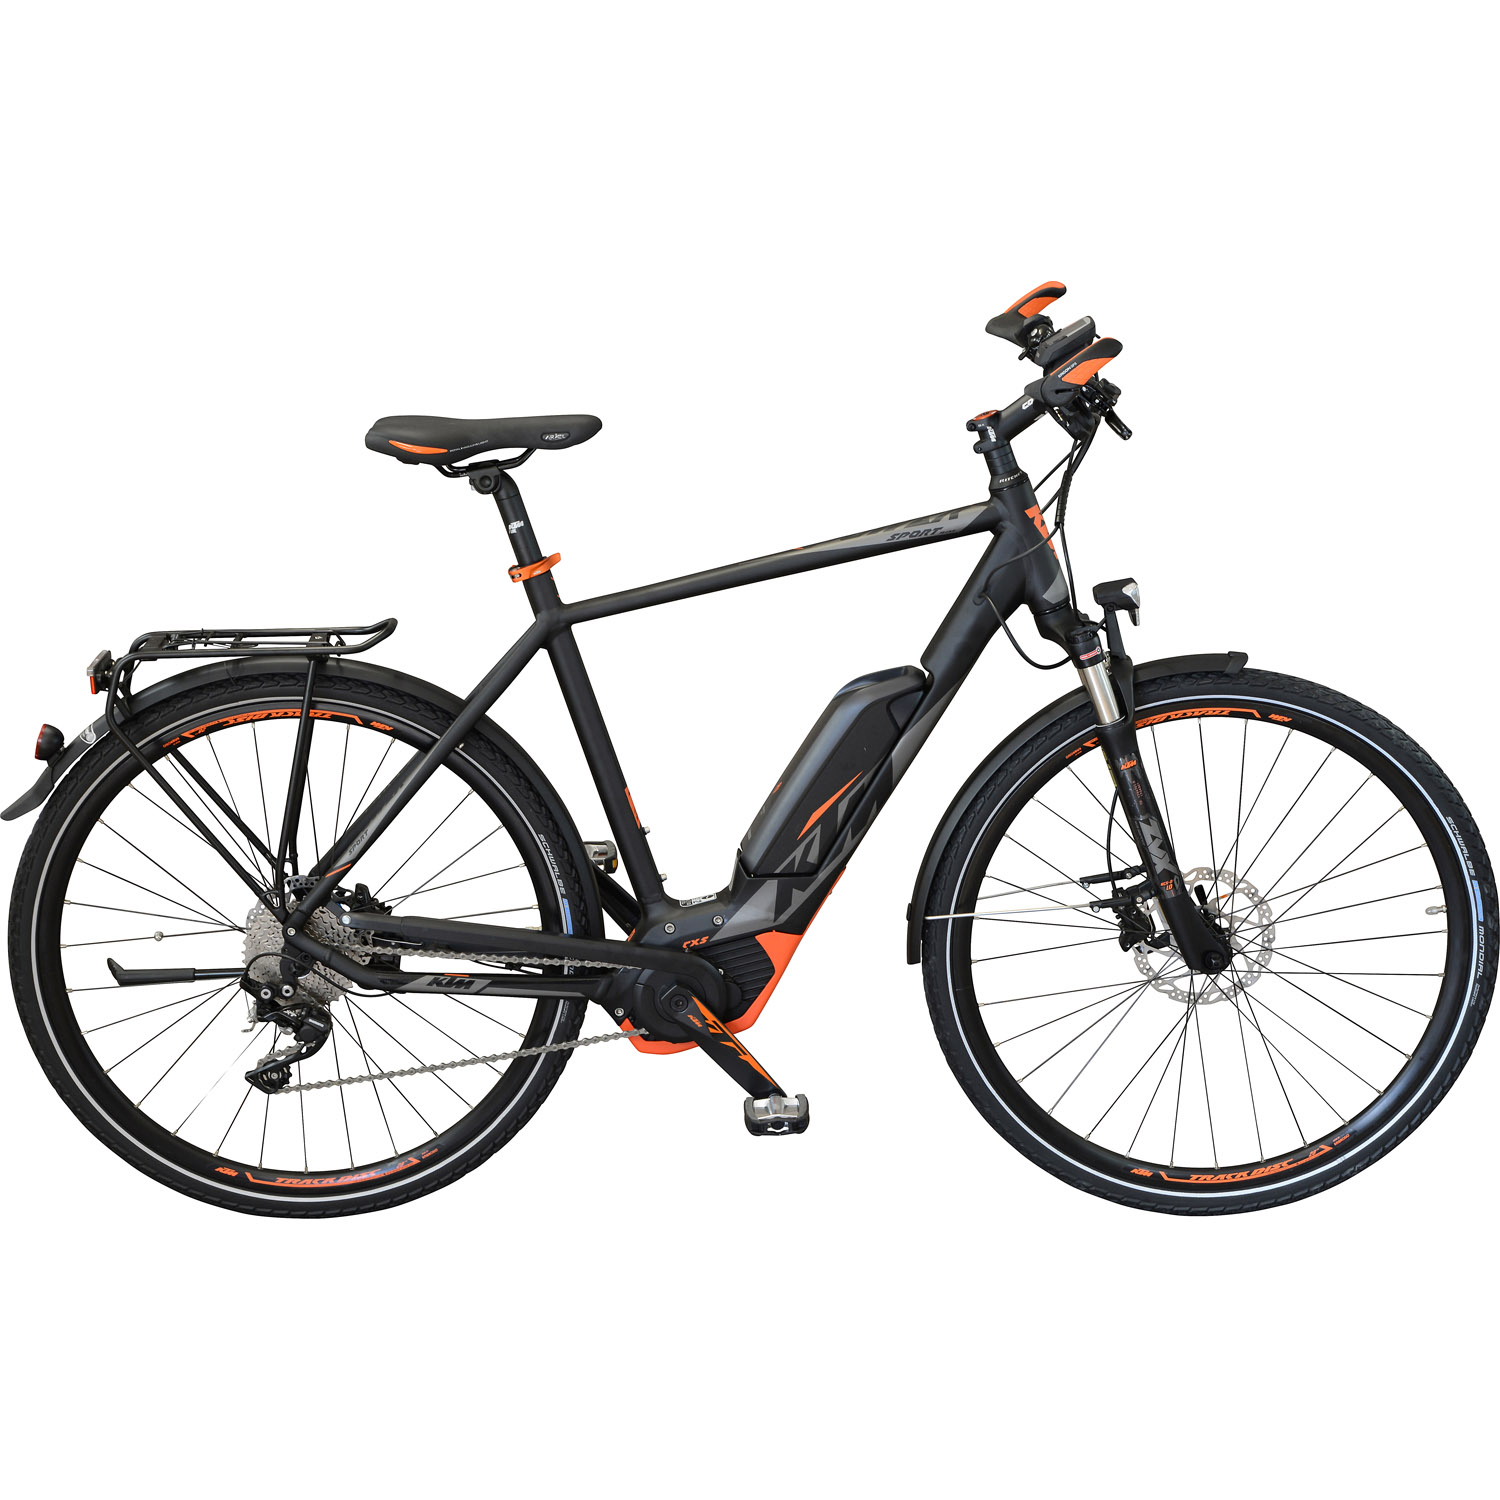 ktm macina sport 10 cx5 elektro mountainbike trapez 46. Black Bedroom Furniture Sets. Home Design Ideas